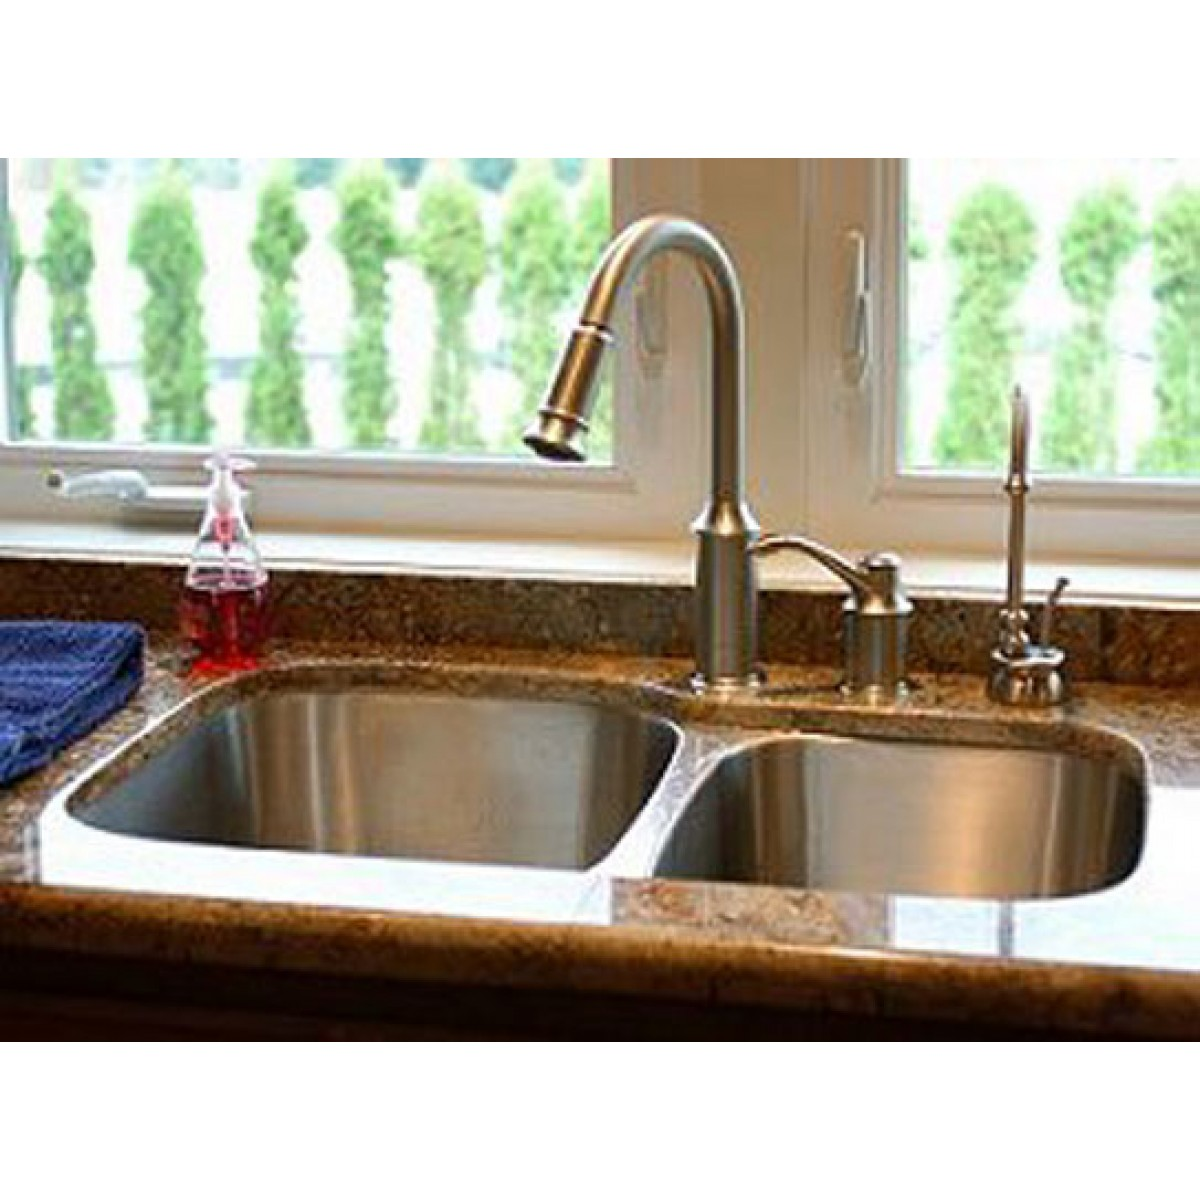 Stainless Steel Sink Kitchen Undermount